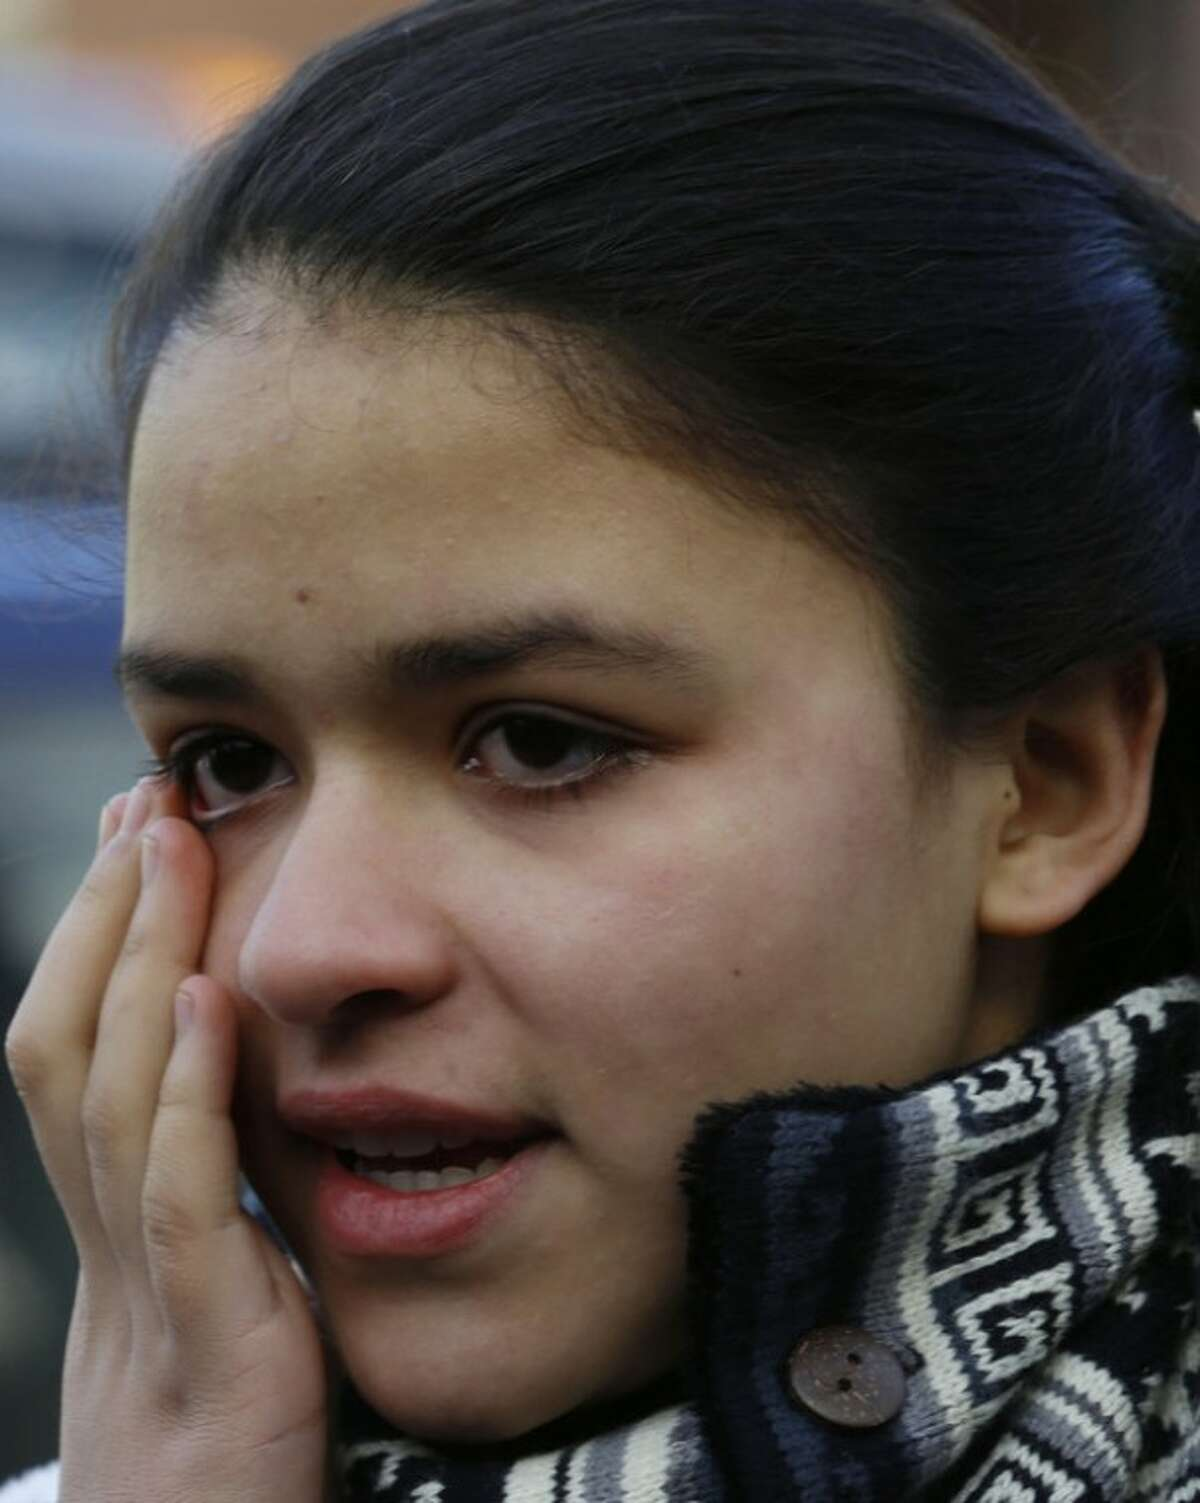 Isabella Jimenez, 12, reacts while talking to reporters about the shooting rampage from a day earlier when a gunman opened fire at Sandy Hook Elementary School, Saturday, Dec. 15, 2012, in Newtown, Conn. Jimenez said she might know the victims because she has done volunteer work with small children. The massacre of 26 children and adults at Sandy Hook Elementary school elicited horror and soul-searching around the world even as it raised more basic questions about why the gunman, 20-year-old Adam Lanza, would have been driven to such a crime and how he chose his victims. (AP Photo/Julio Cortez)